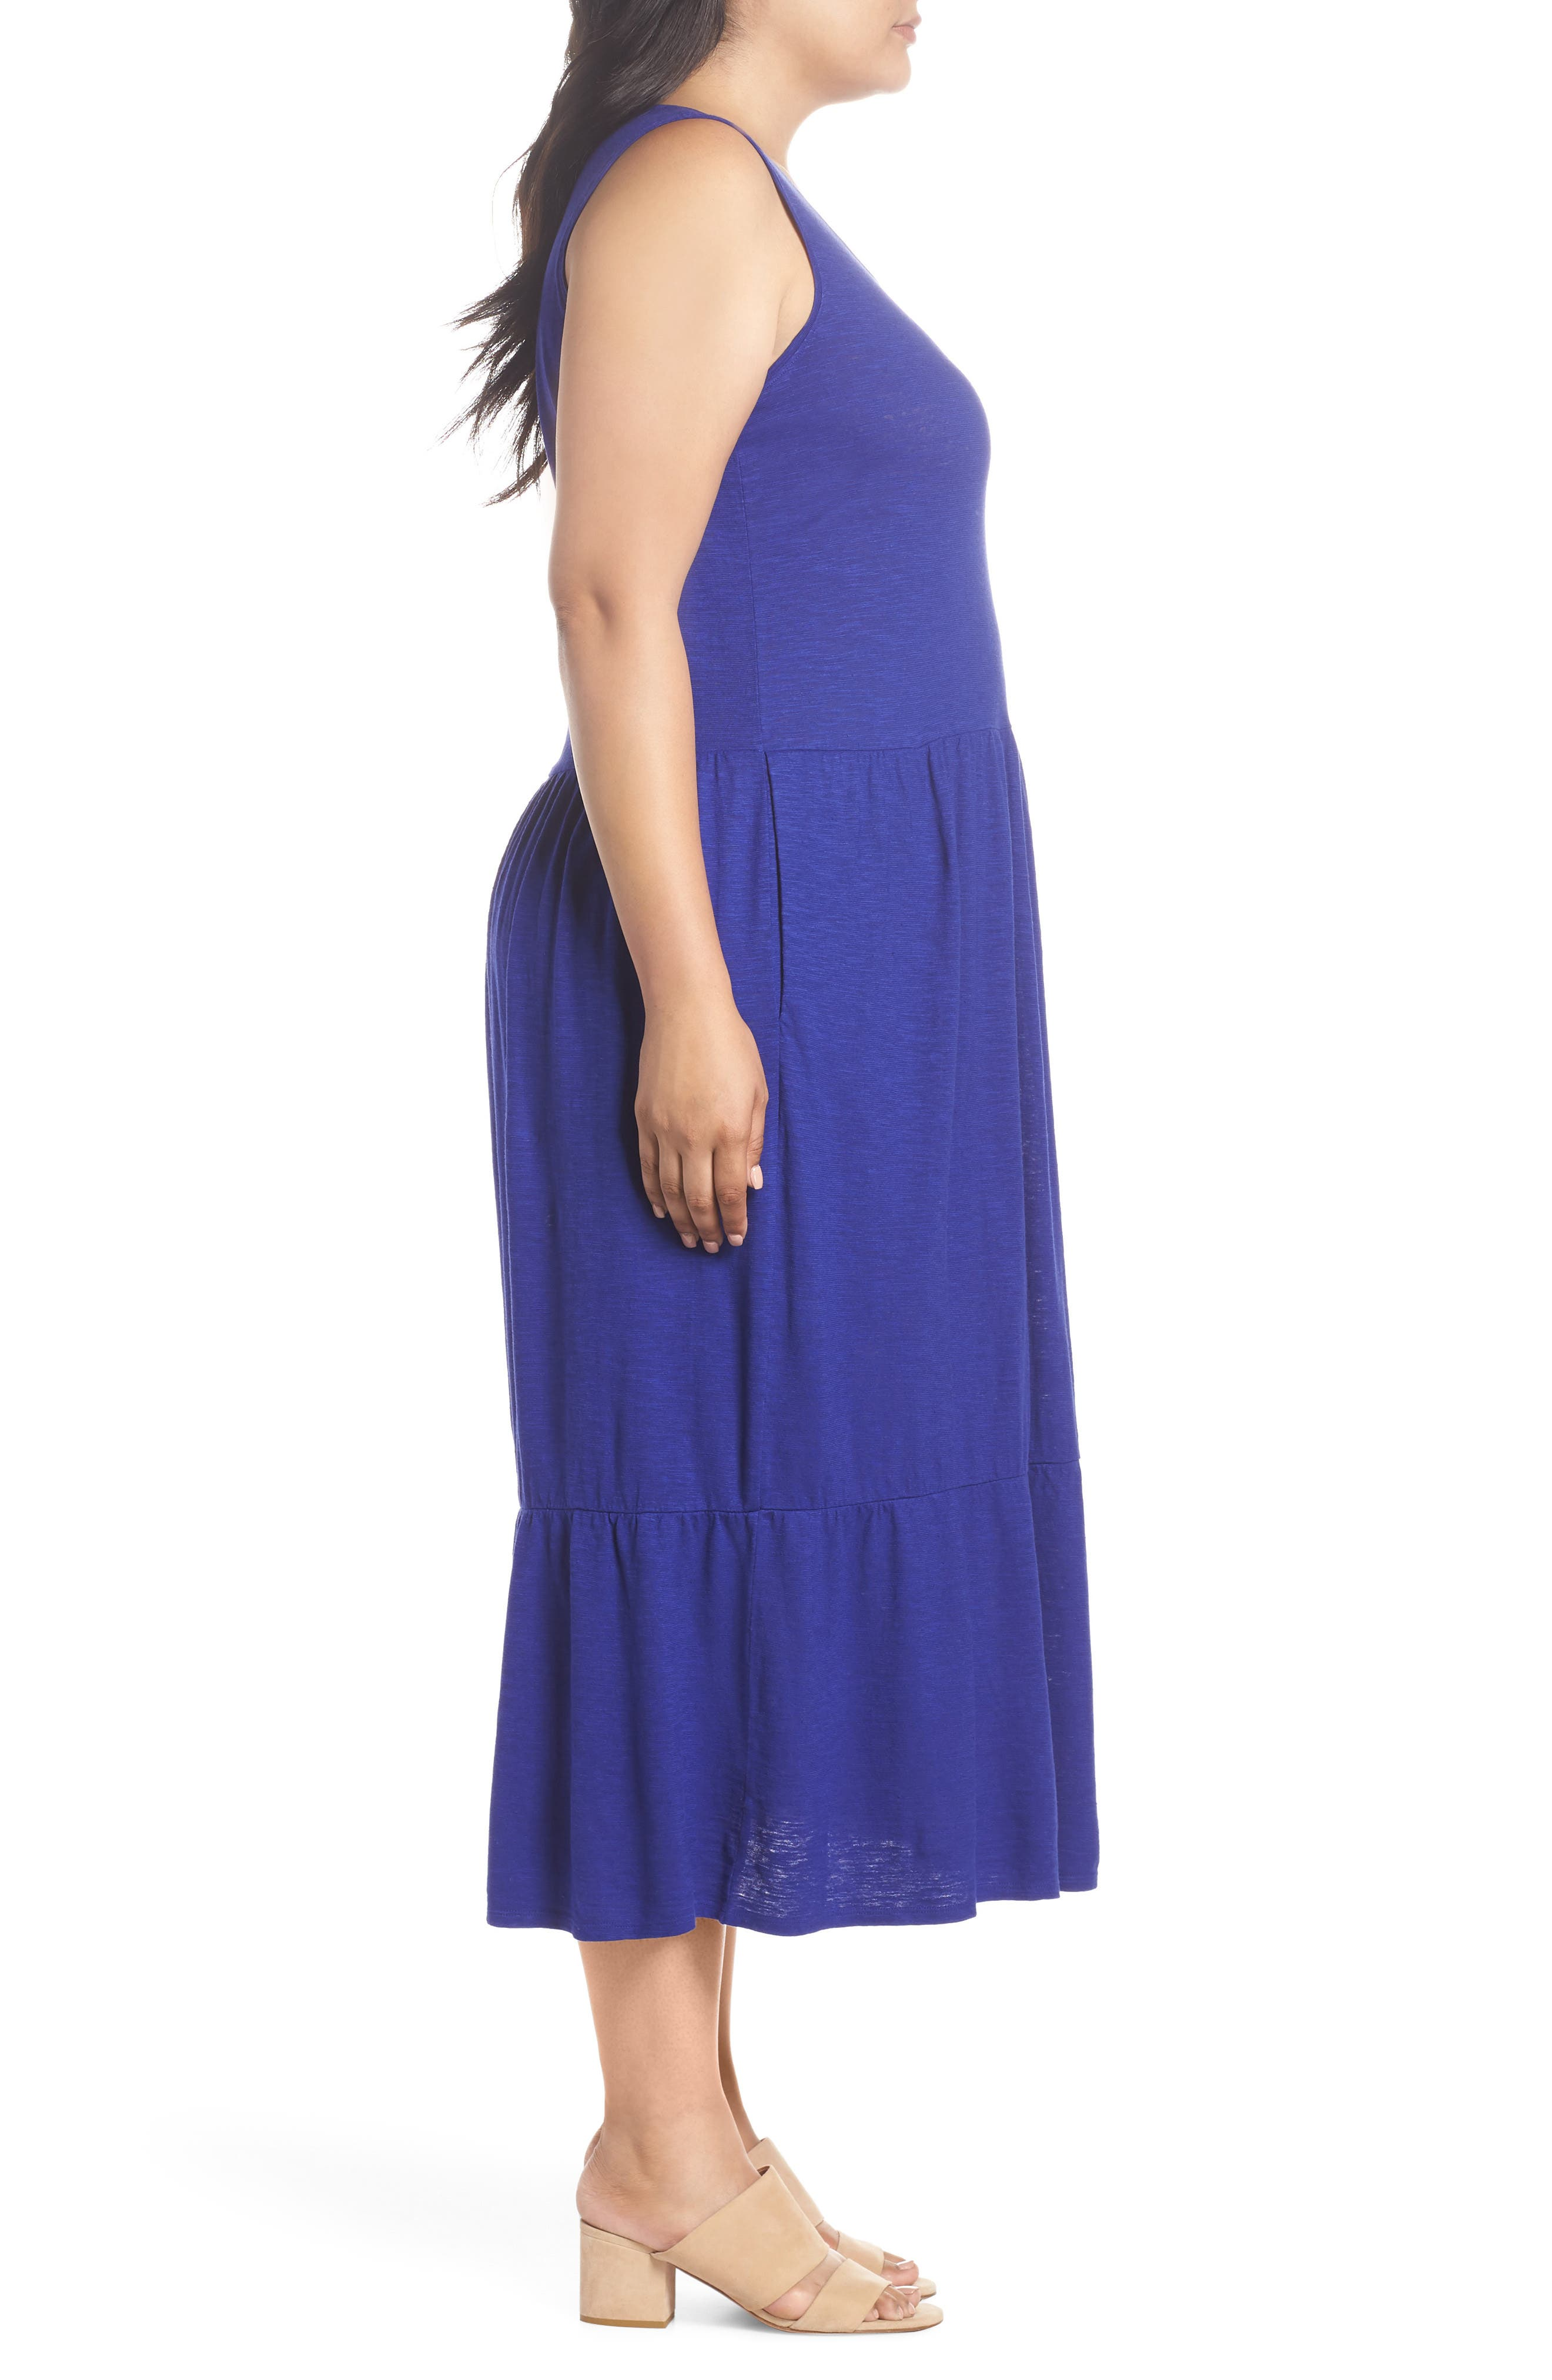 Scooped Neck Hemp & Cotton Midi Dress,                             Alternate thumbnail 3, color,                             BLUE VIOLET